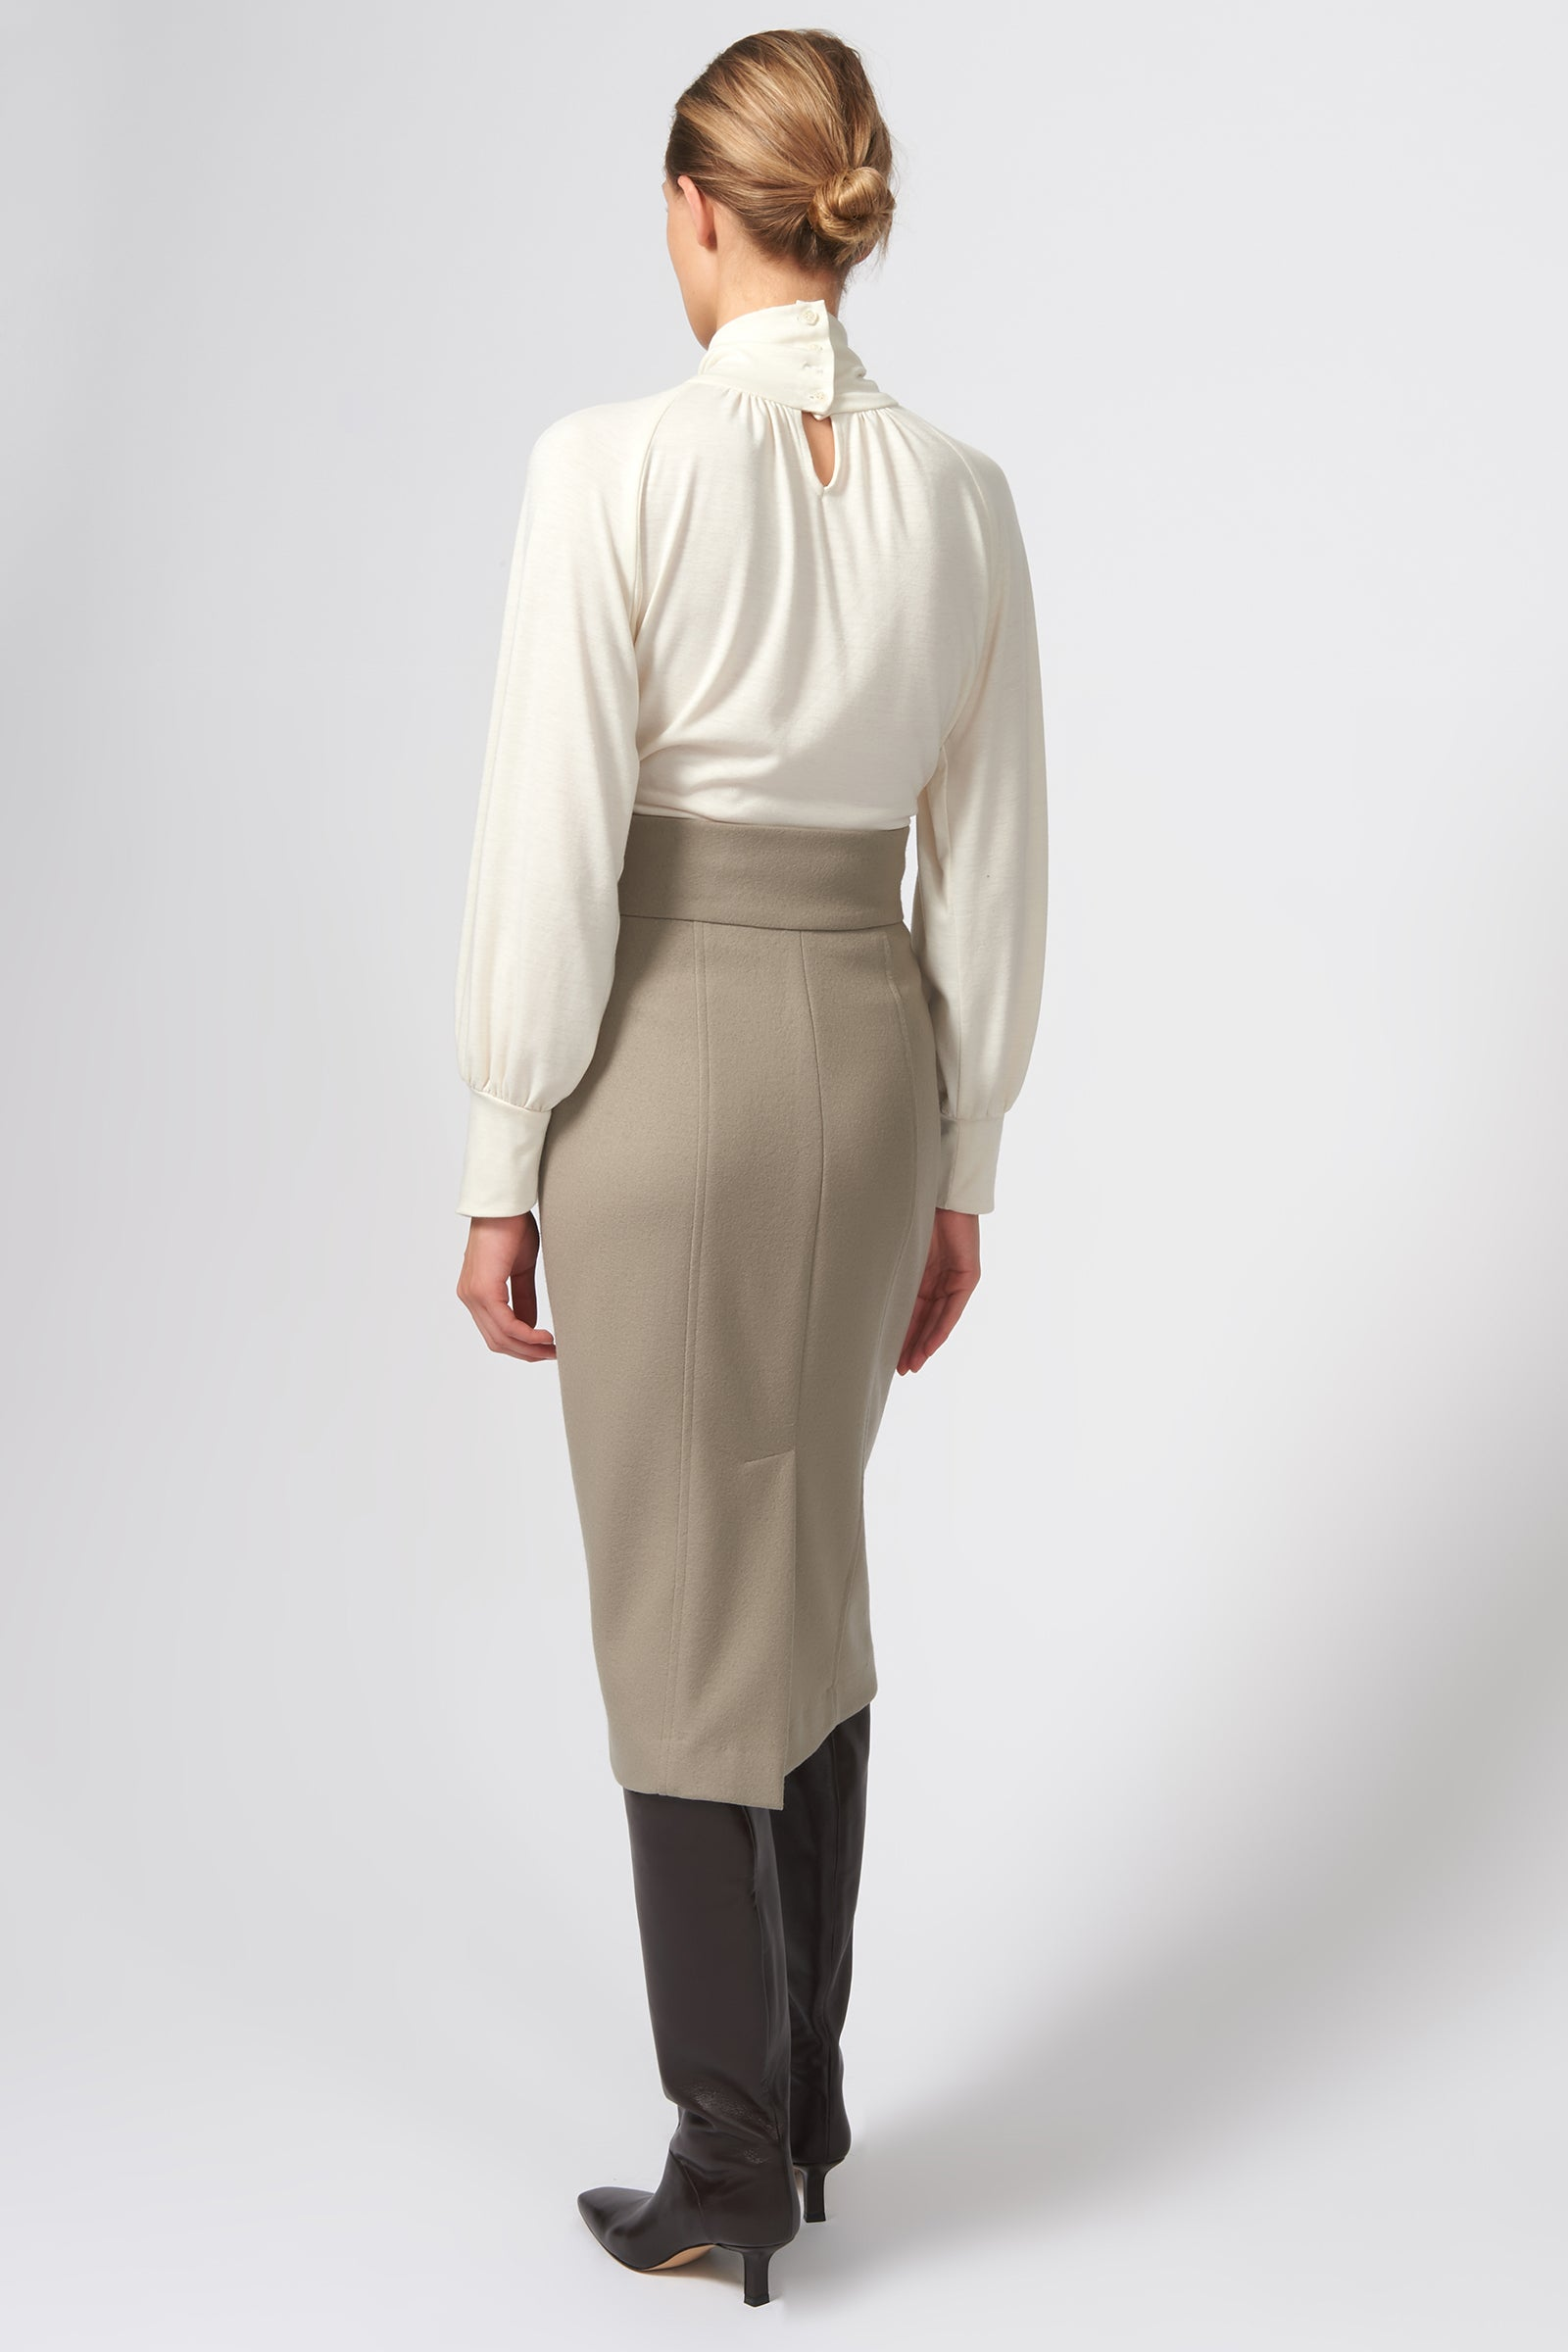 Kal Rieman High Waisted Pencil Skirt in Taupe on Model Full Back View